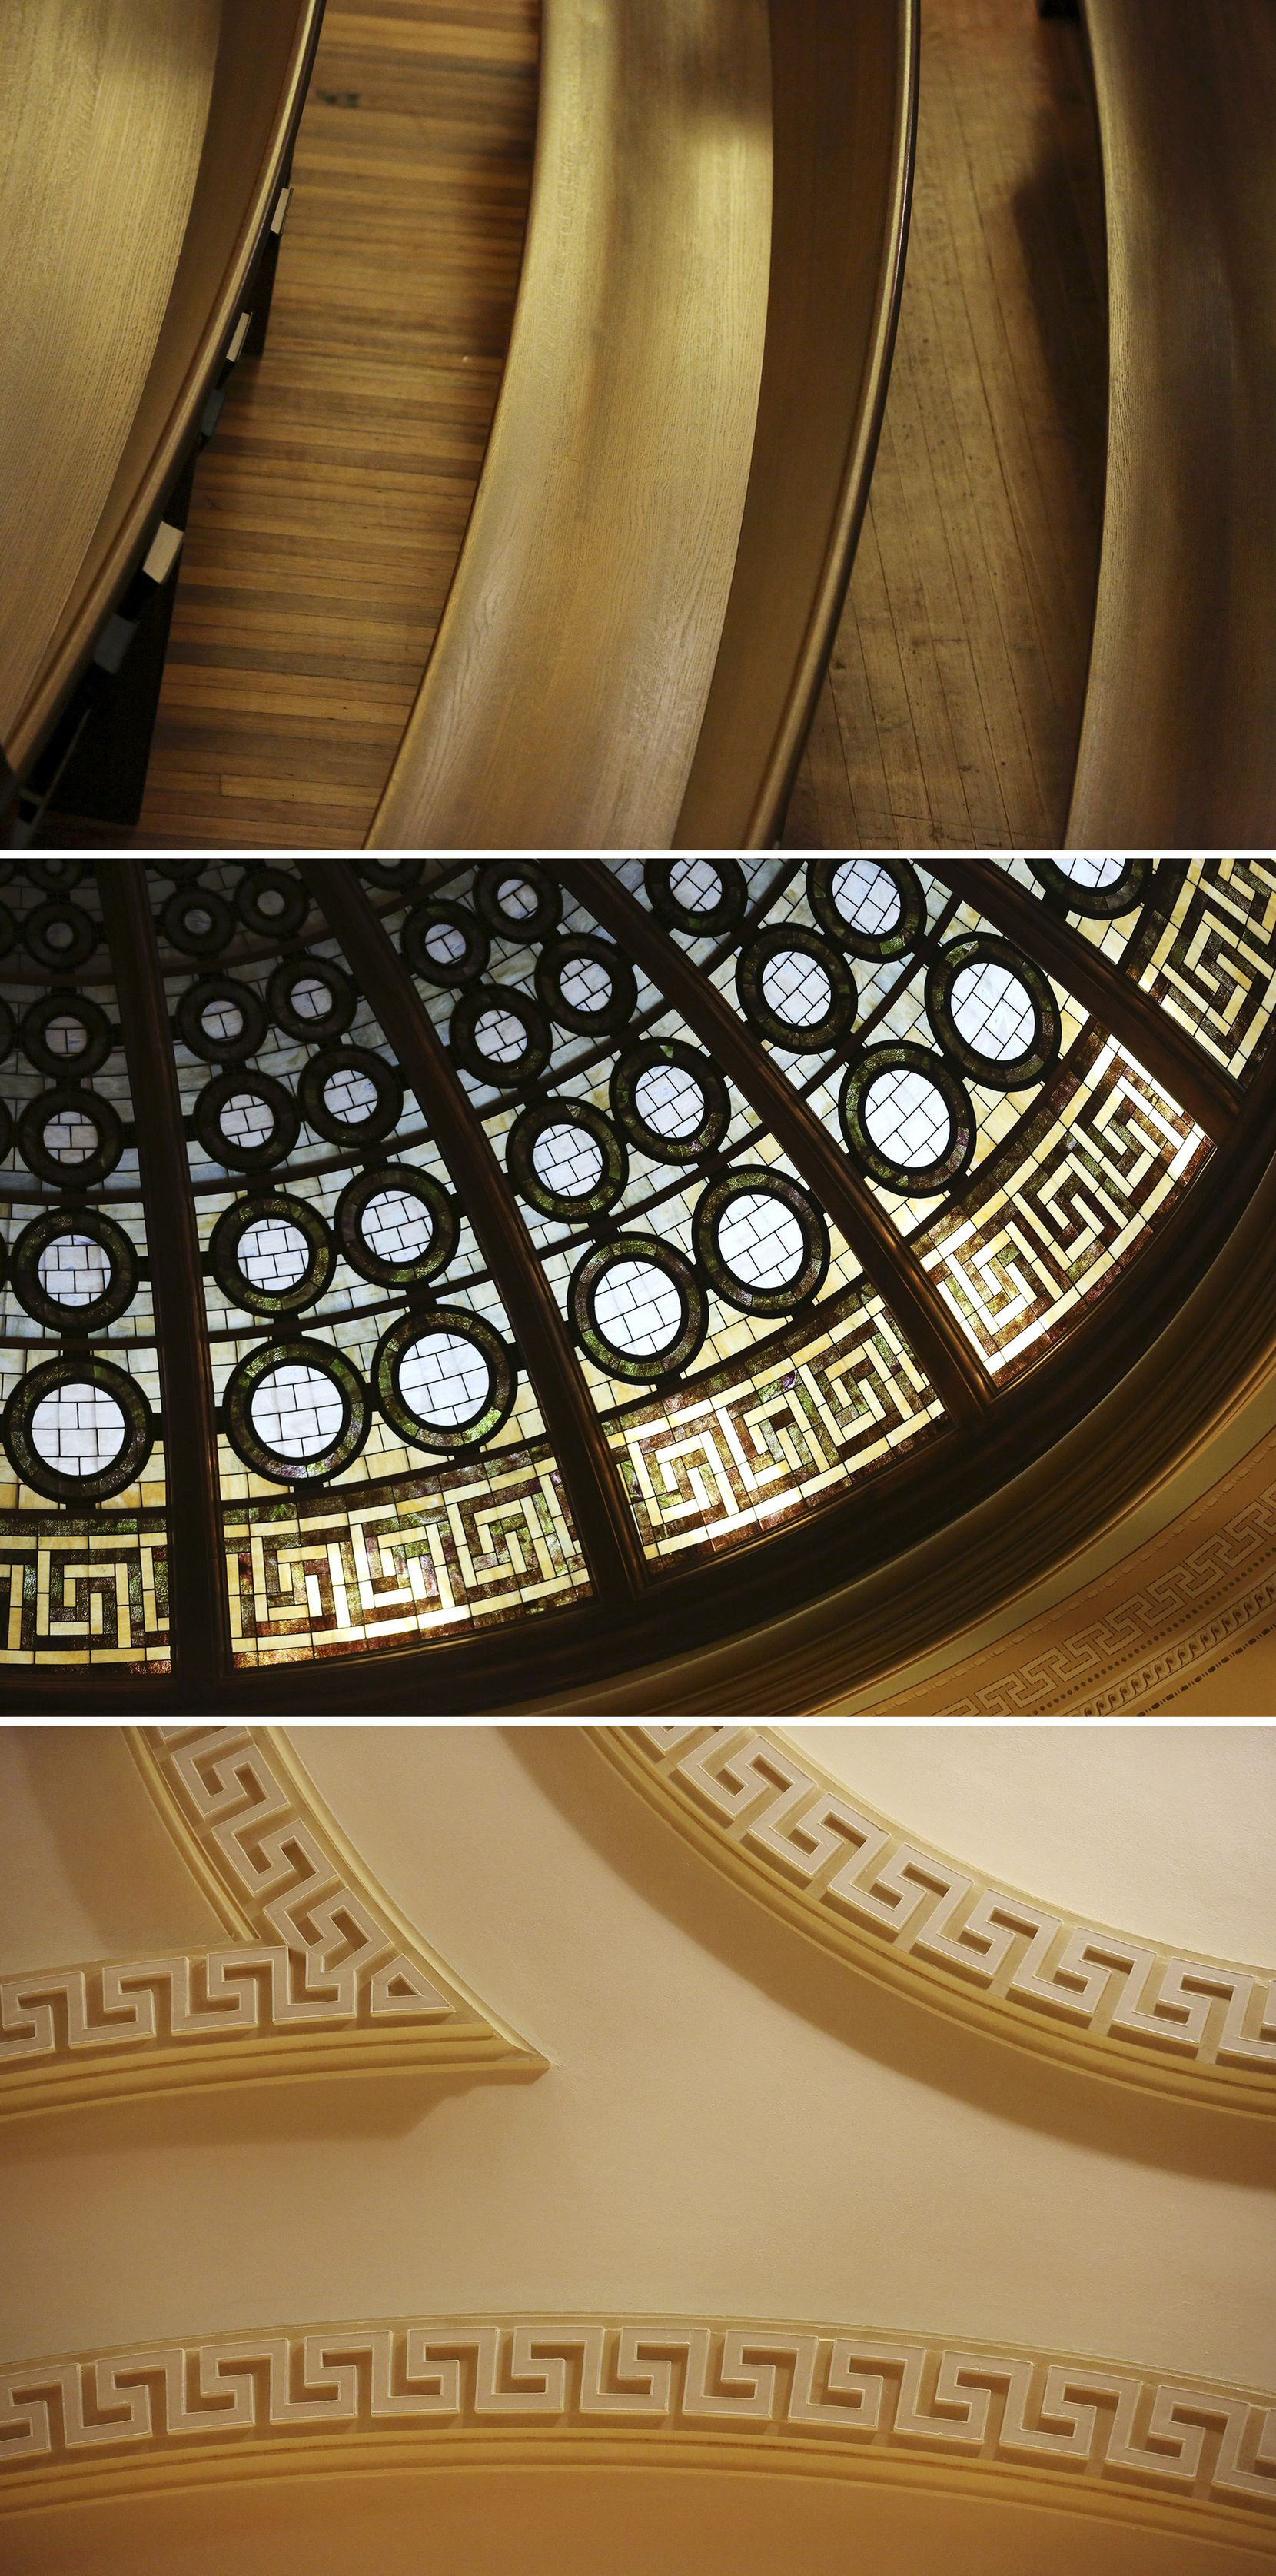 Details within the sanctuary include (from top) the new wooden pews, stained glass in the dome and ornate moldings on the ceiling.